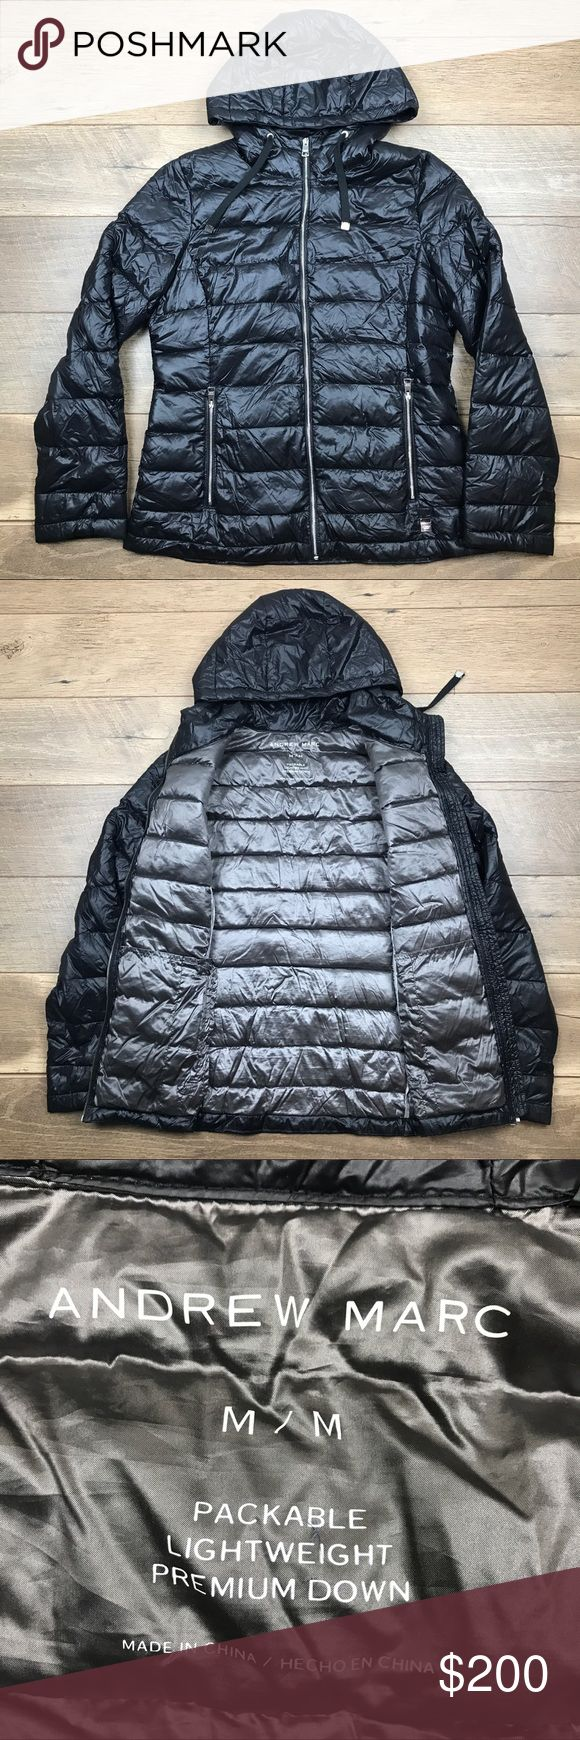 Andrew Marc Packable Lightweight Premium Down Coat NWOT Andrew Marc Packable Lightweight Premium Down Coat. Includes an Andrew Marc Bag. Adjustable drawstring at hood. Front pockets with zippers. Excellent material. Excellent Condition. Andrew Marc Jackets & Coats Puffers